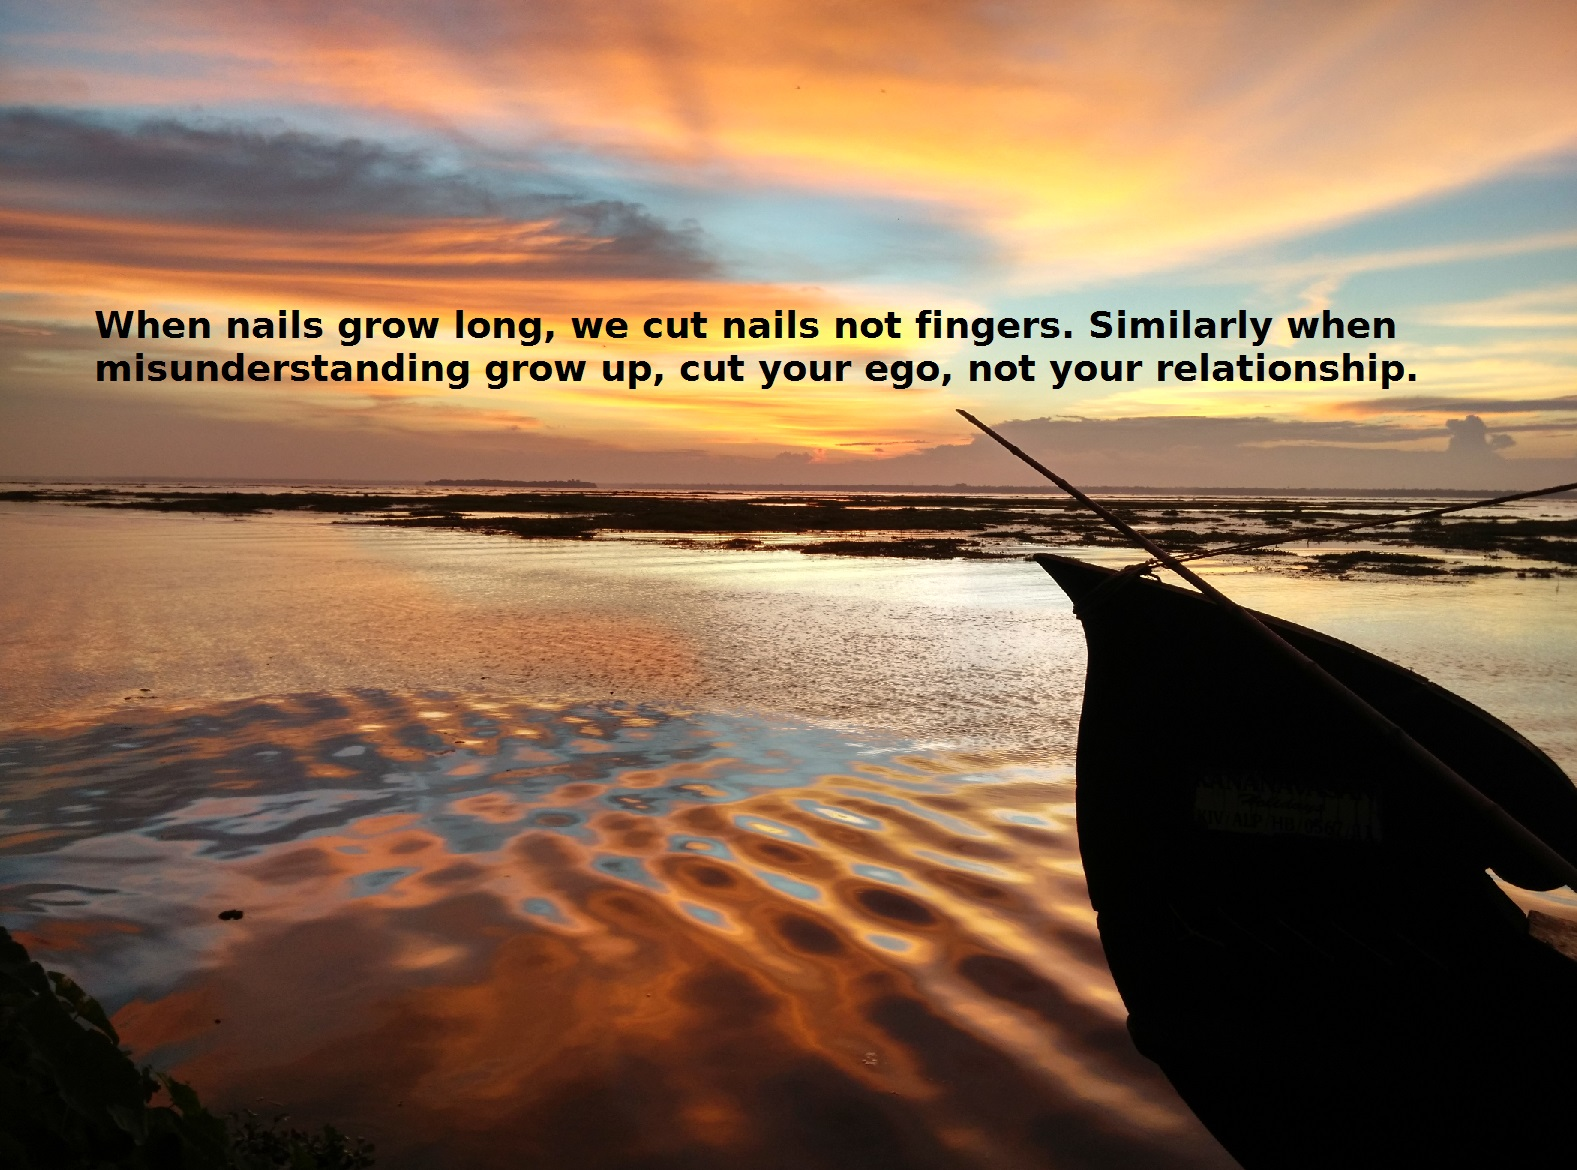 When nails grow long, we cut nails not fingers. Similarly when misunderstanding grow up, cut your ego, not your relationship.